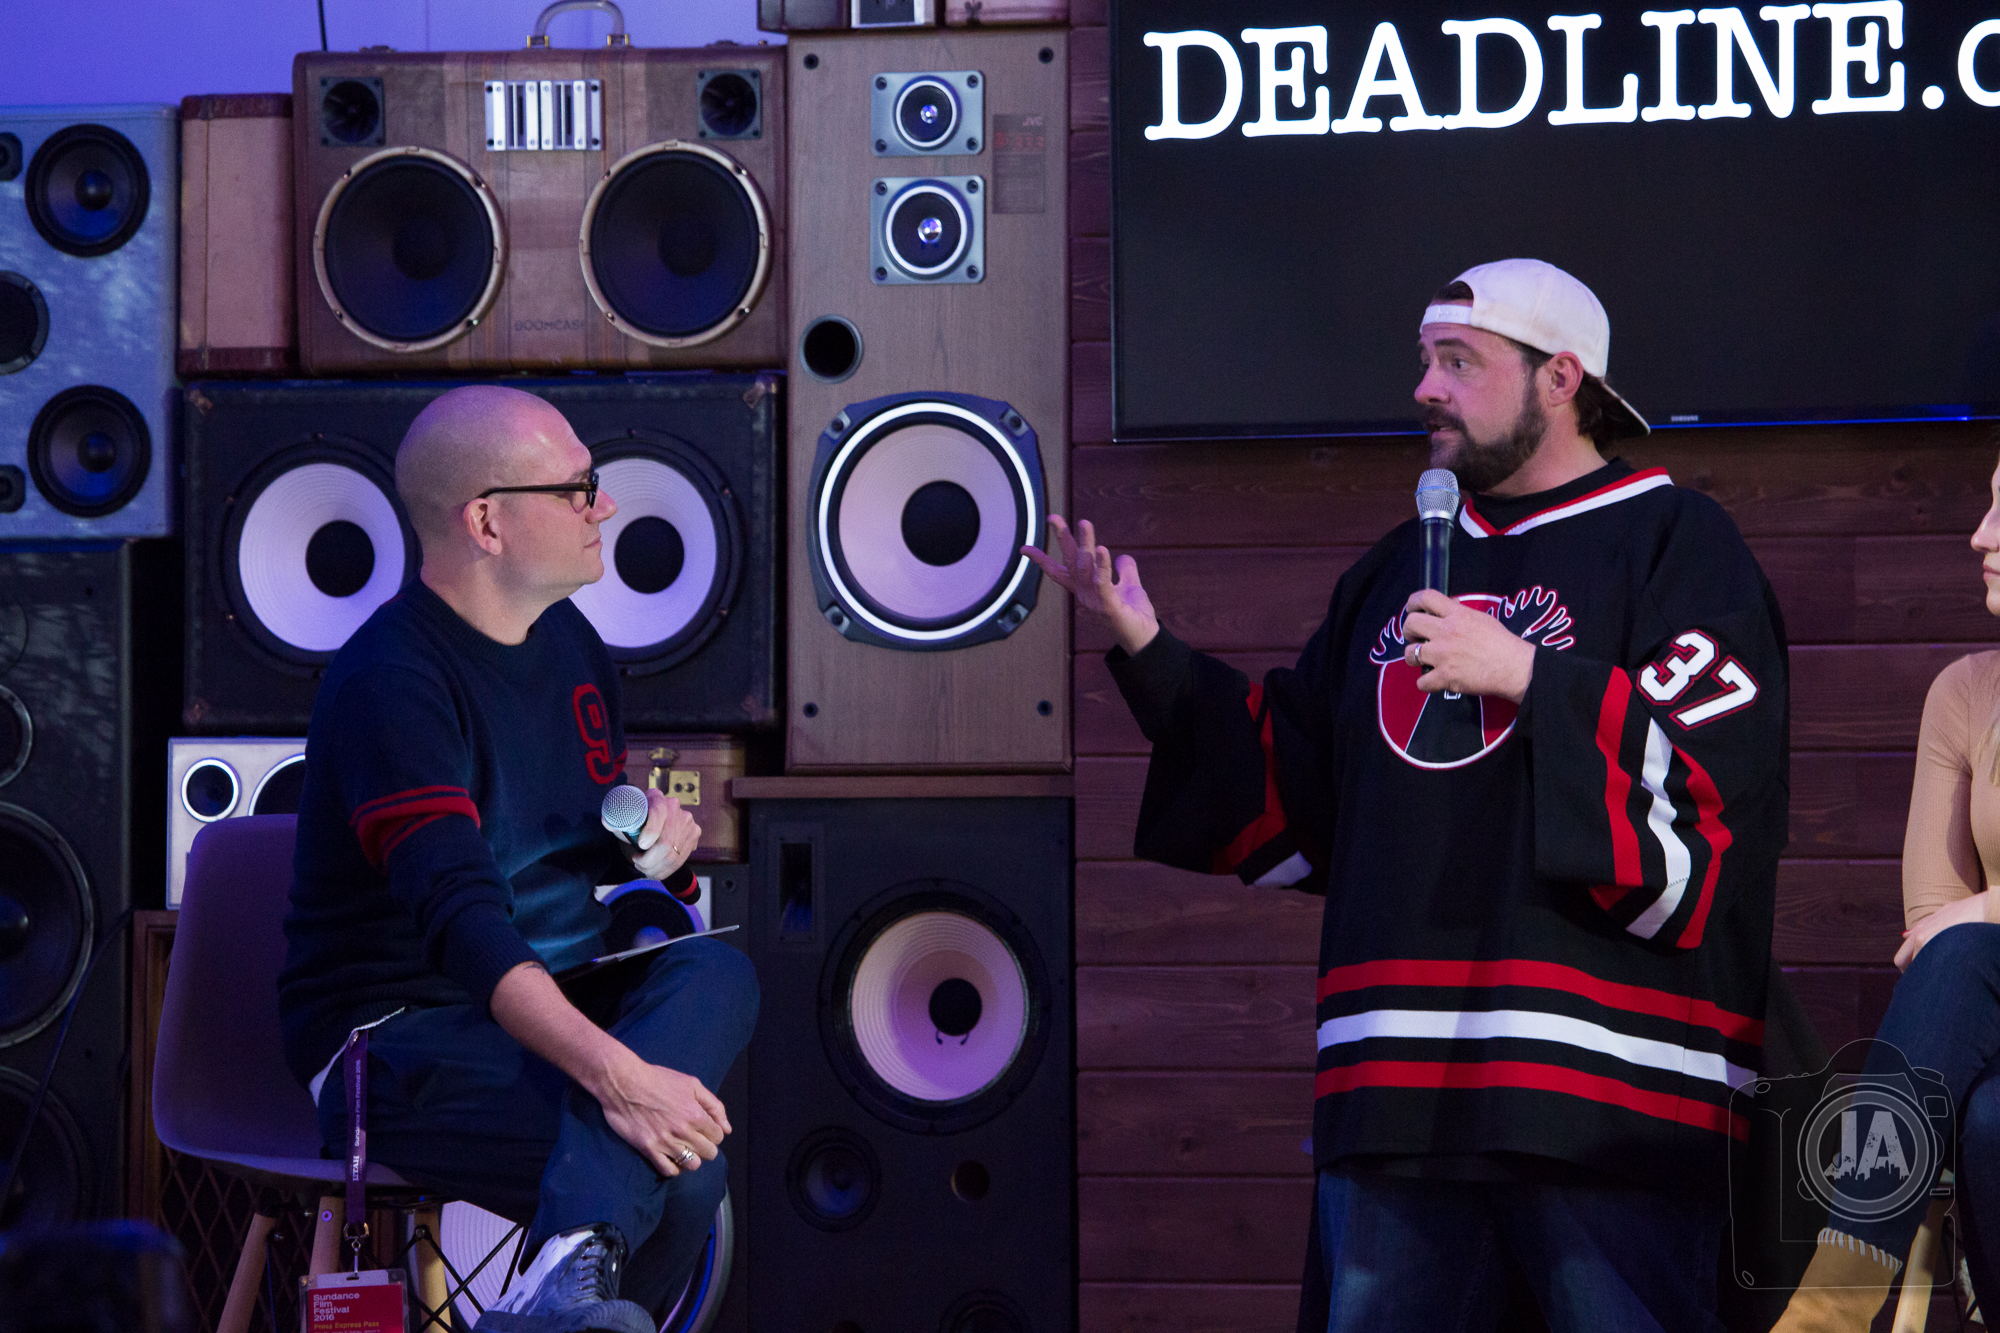 Kevin Smith at Sundance Film Festival